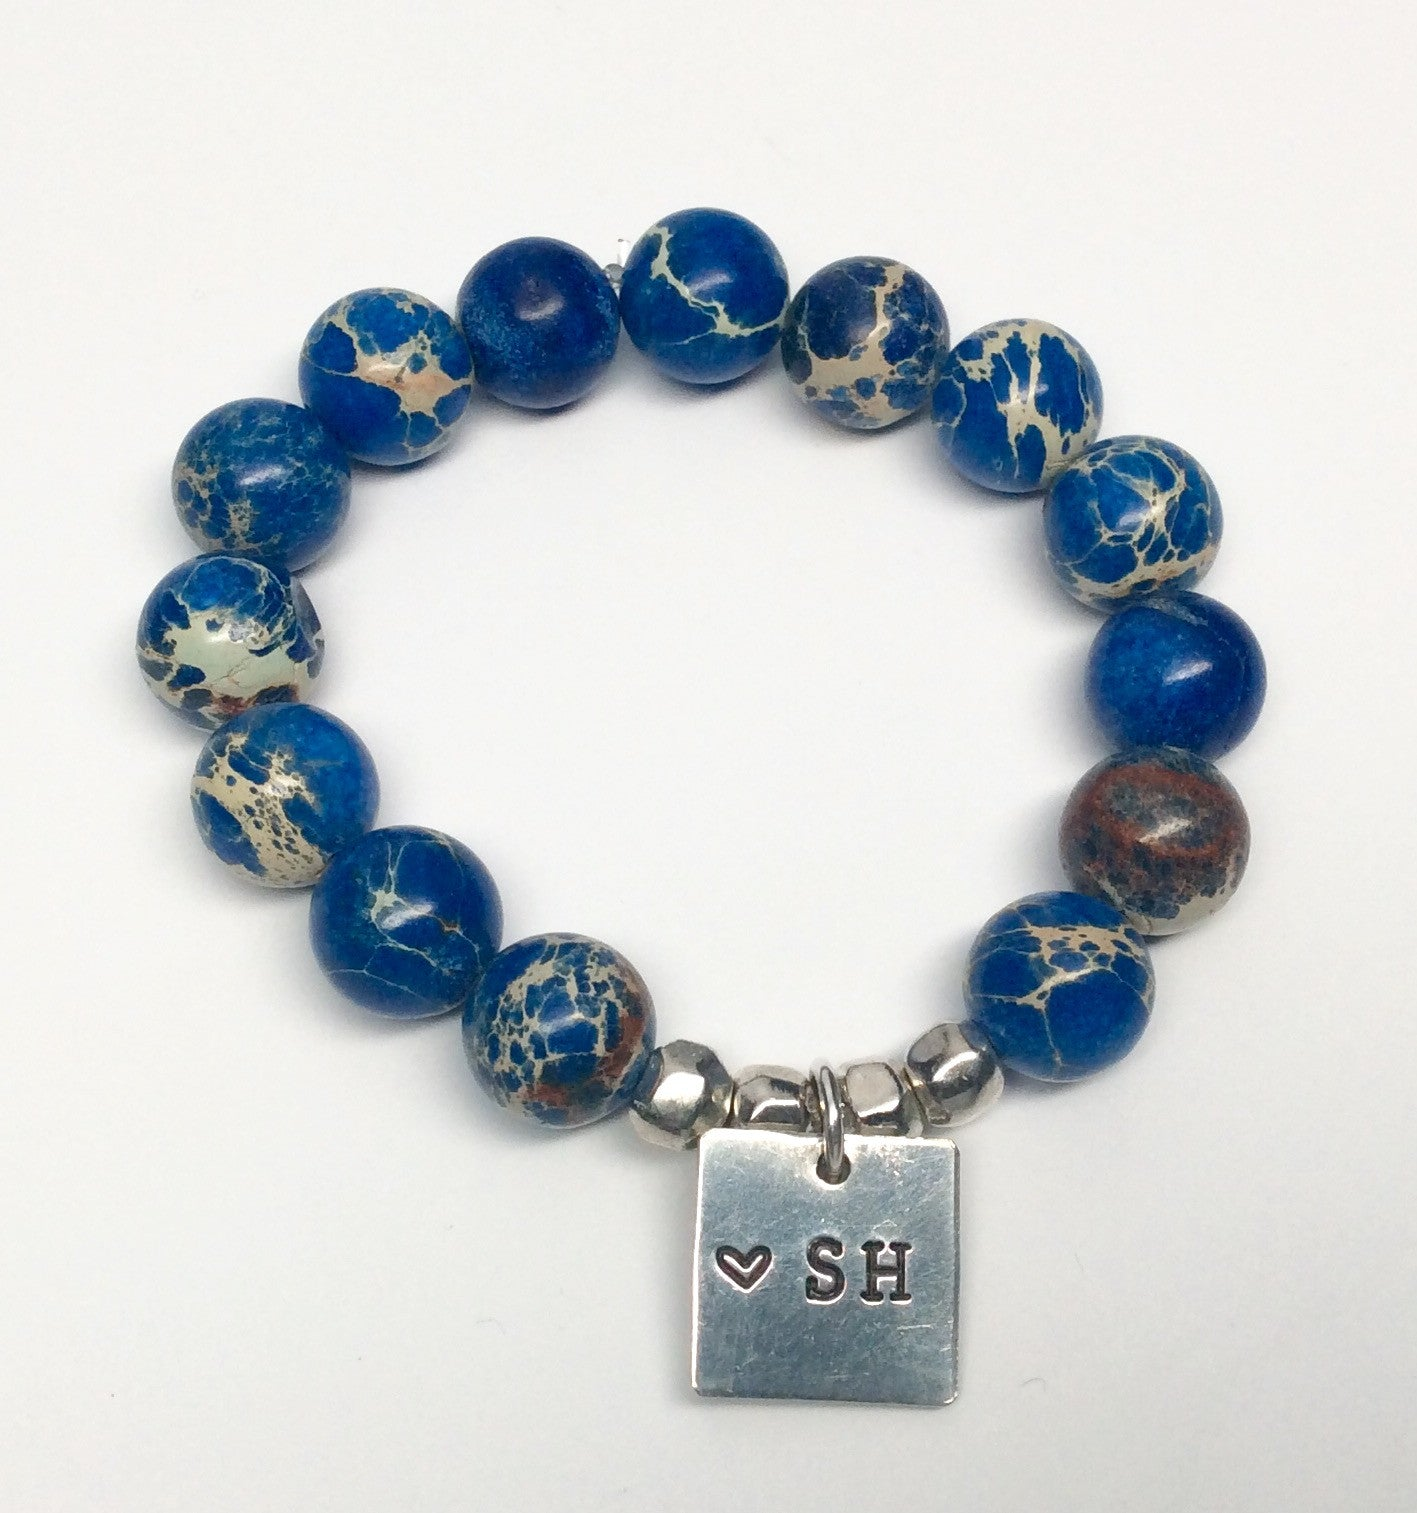 THE HARBOR BRACELET